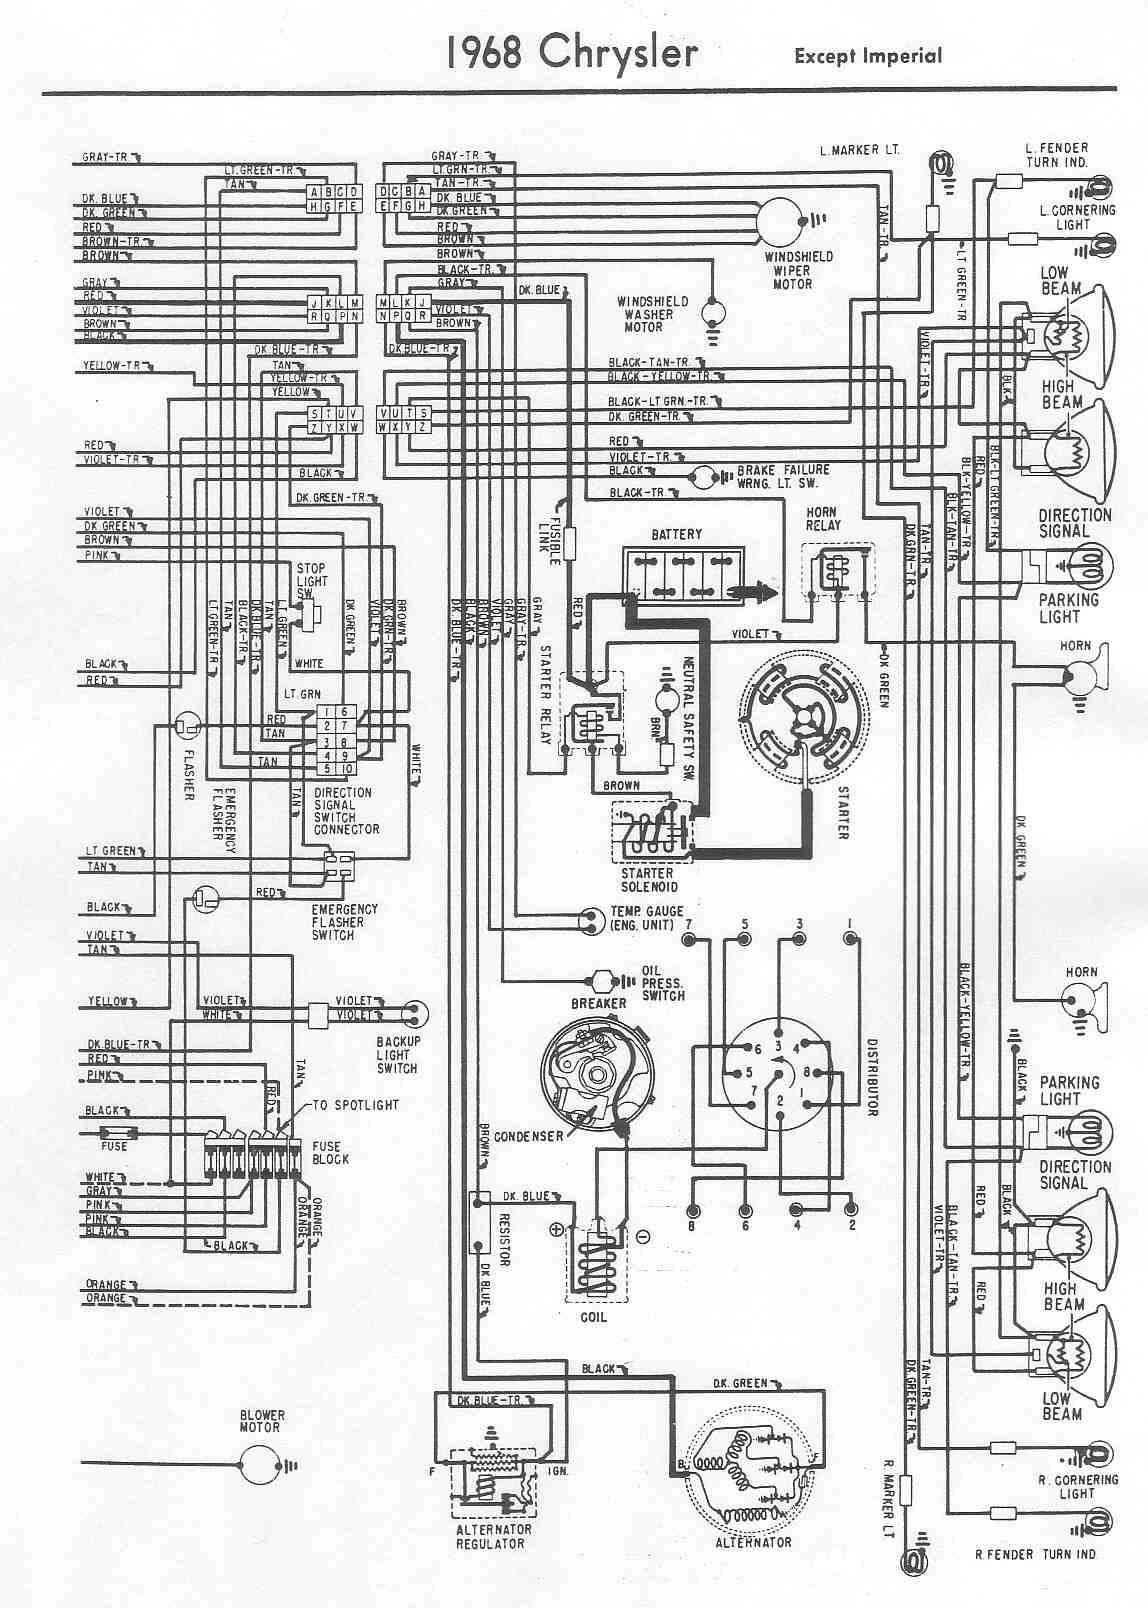 Chrysler Wiring Diagrams Free Wiring Diagrams Weebly Com | Schematic on dodge ram 1500 electrical diagrams, free circuit diagrams, free chevy repair diagrams, free gmc diagrams, free online auto repair diagrams, jeep repair diagrams, free auto parts diagrams, free chrysler repair manuals, buick century electrical diagrams, free radio wiring diagram, free car diagrams, free honda wiring diagram, free corvette wiring diagram, free toyota repair diagrams, corvette schematics diagrams, gmc electrical diagrams, nissan repair diagrams, free mercedes-benz diagrams,